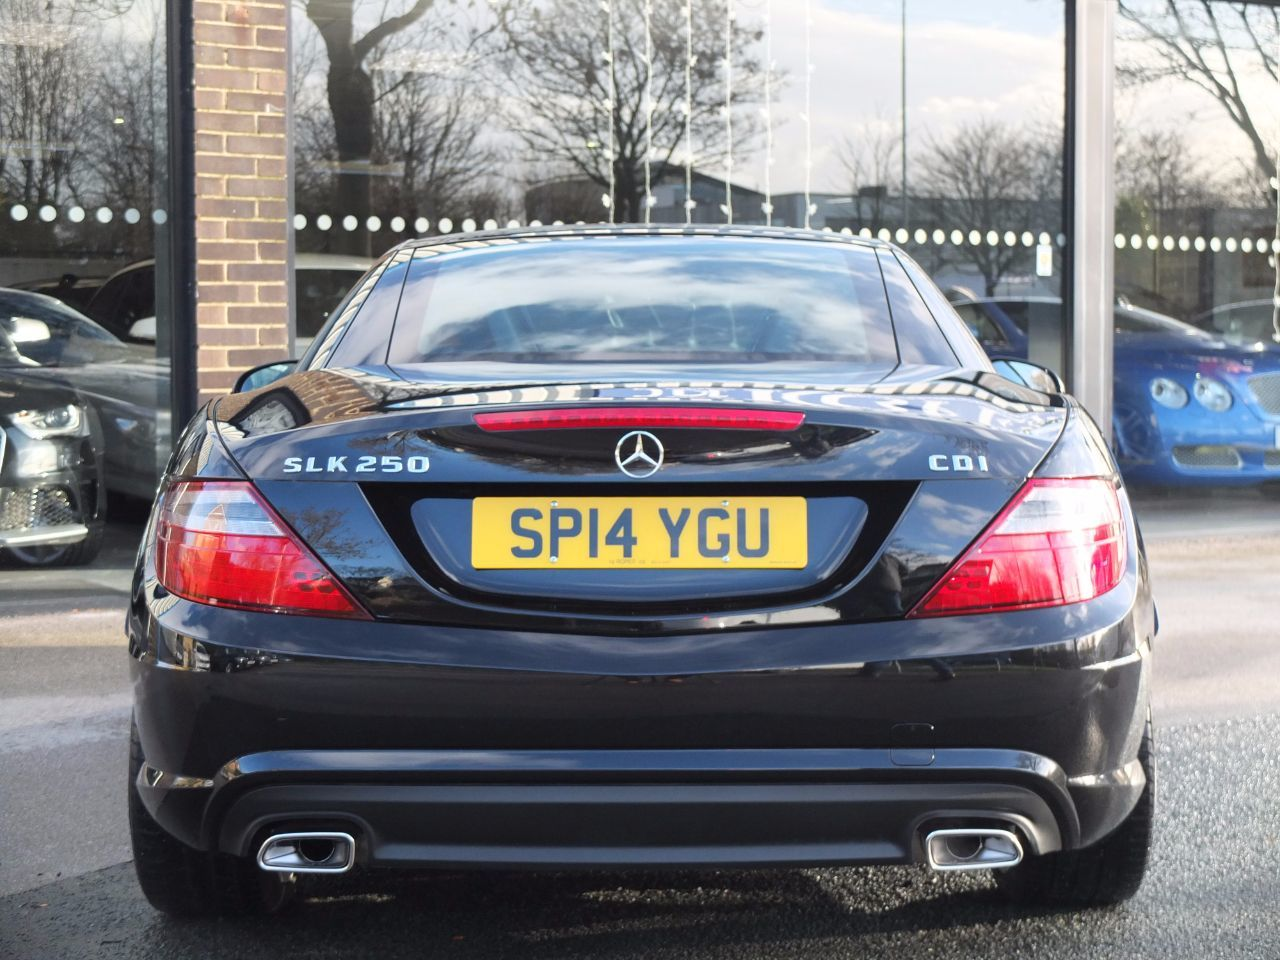 Mercedes-Benz SLK 2.1 SLK 250 CDI BlueEFFICIENCY AMG Sport 7G-Tronic Plus Auto Convertible Diesel Obsidian Black Metallic